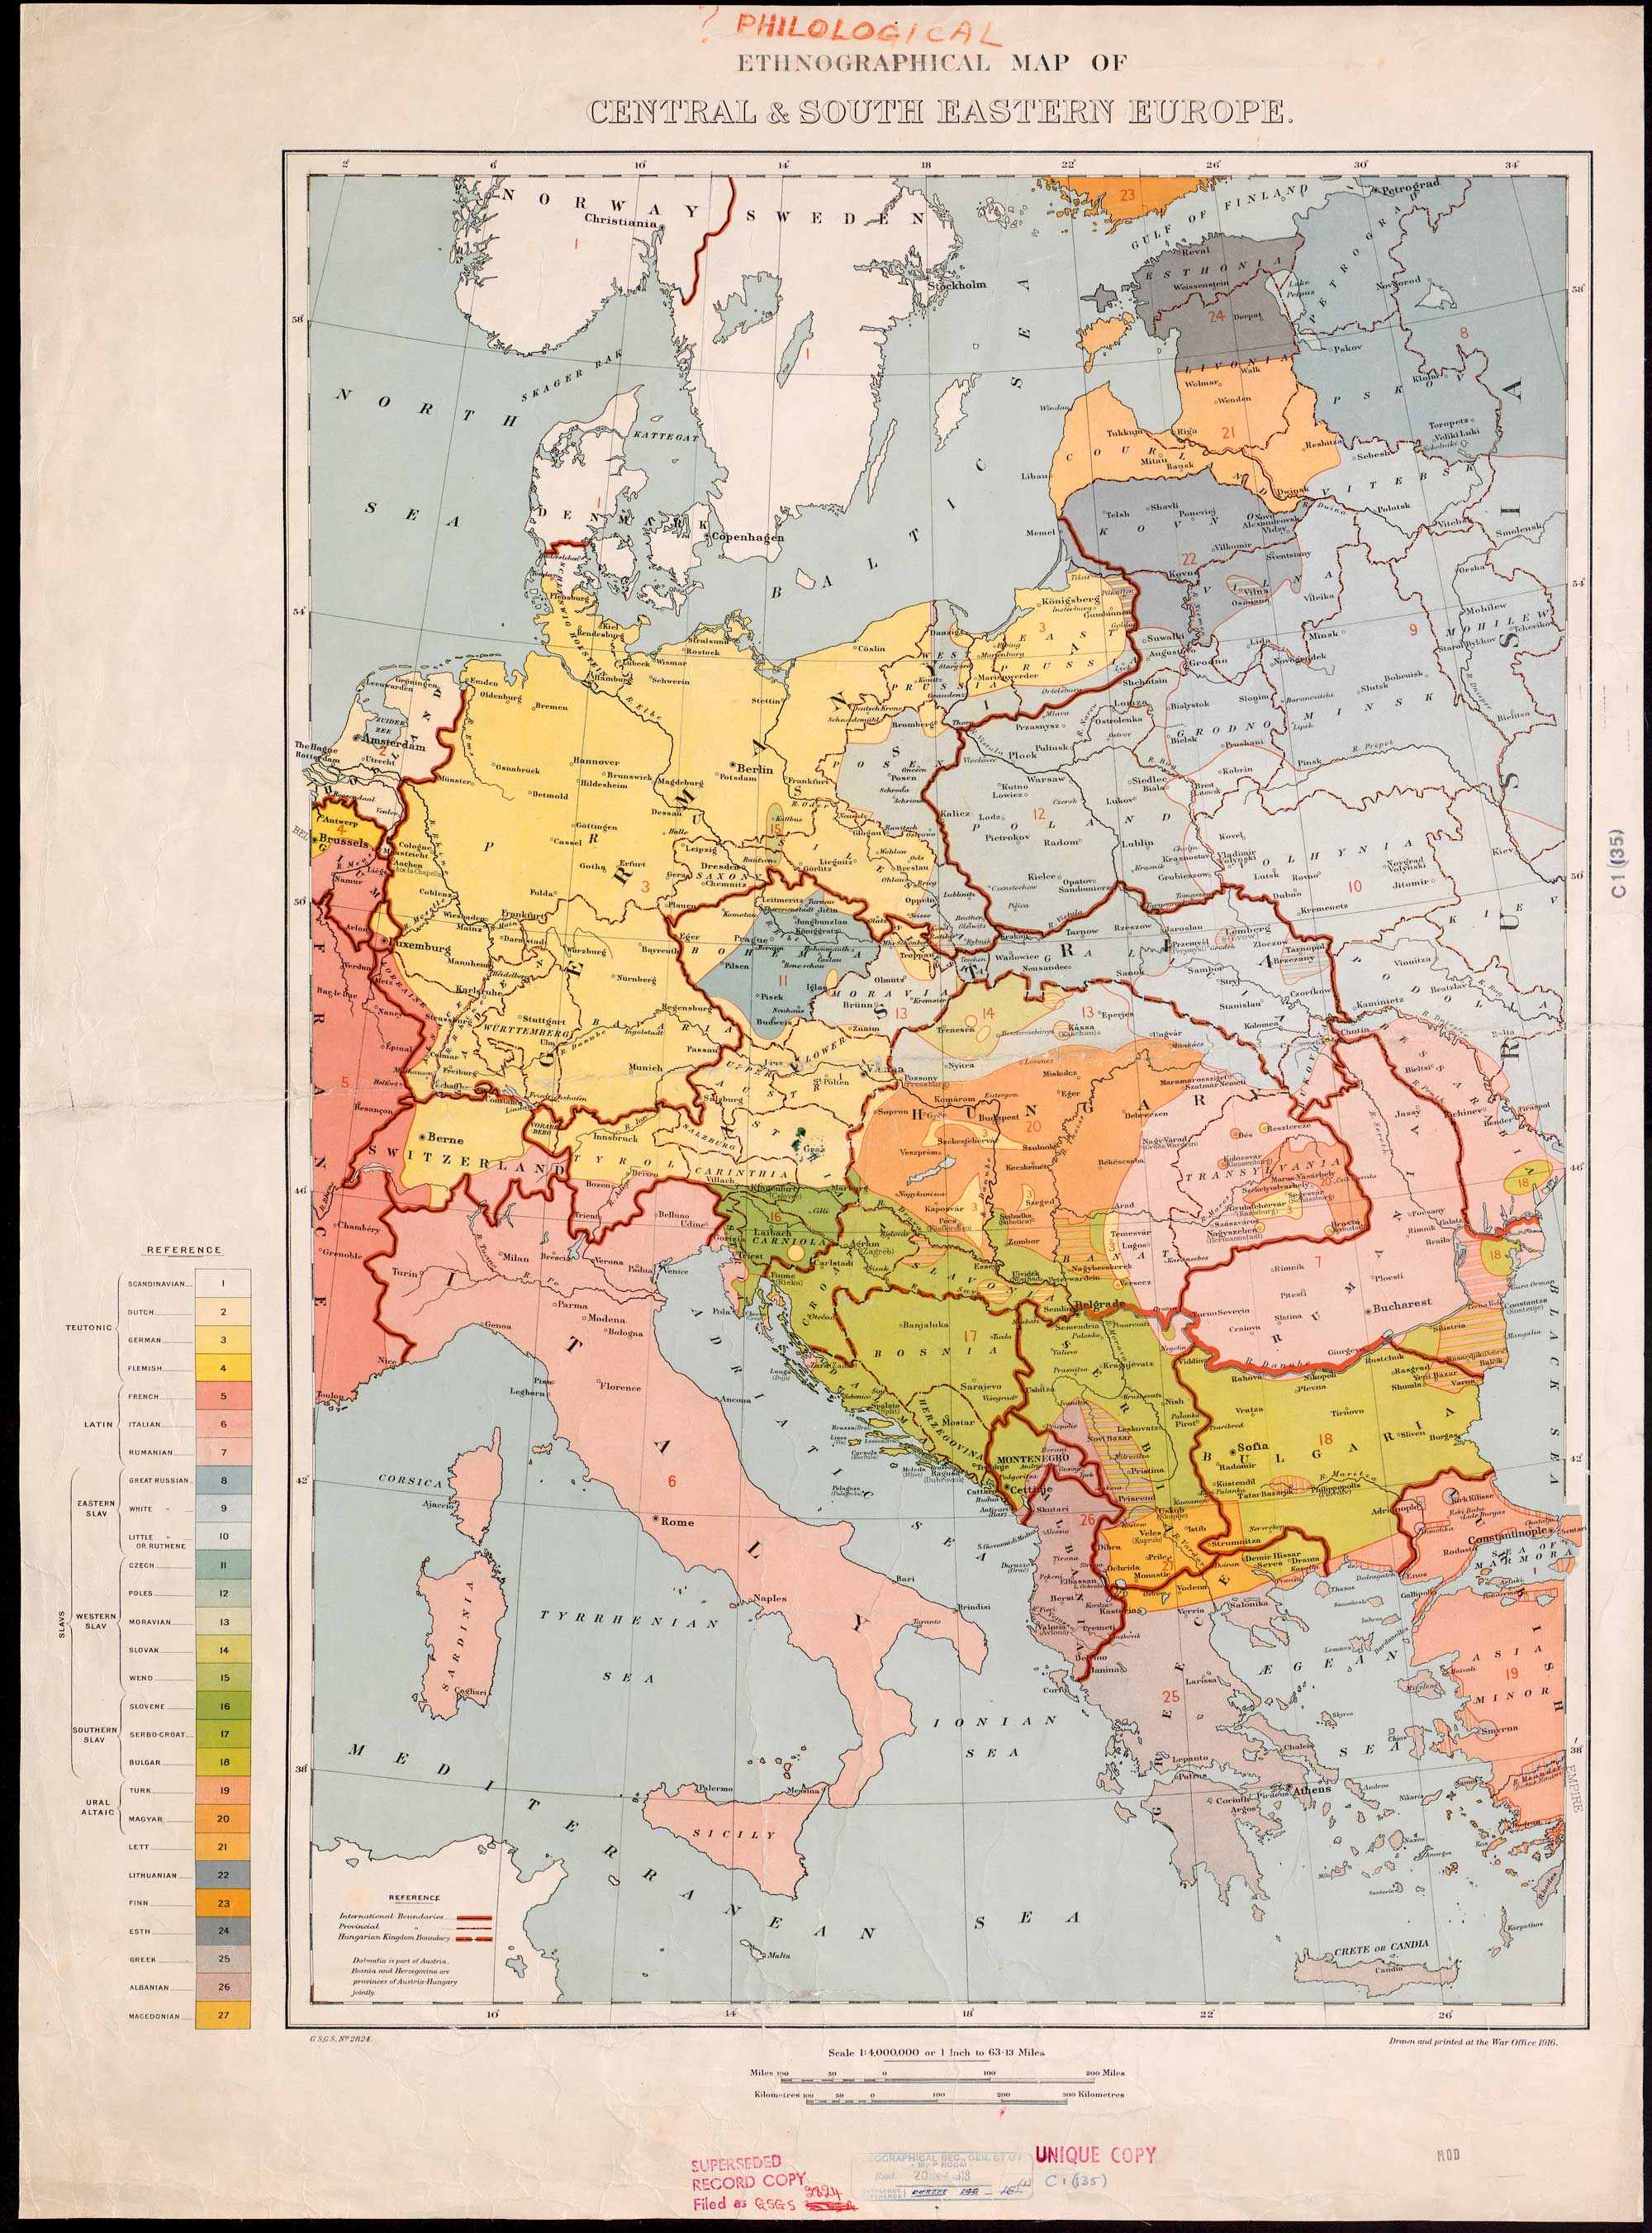 Ethnographical map of central & south eastern Europe - The British ...